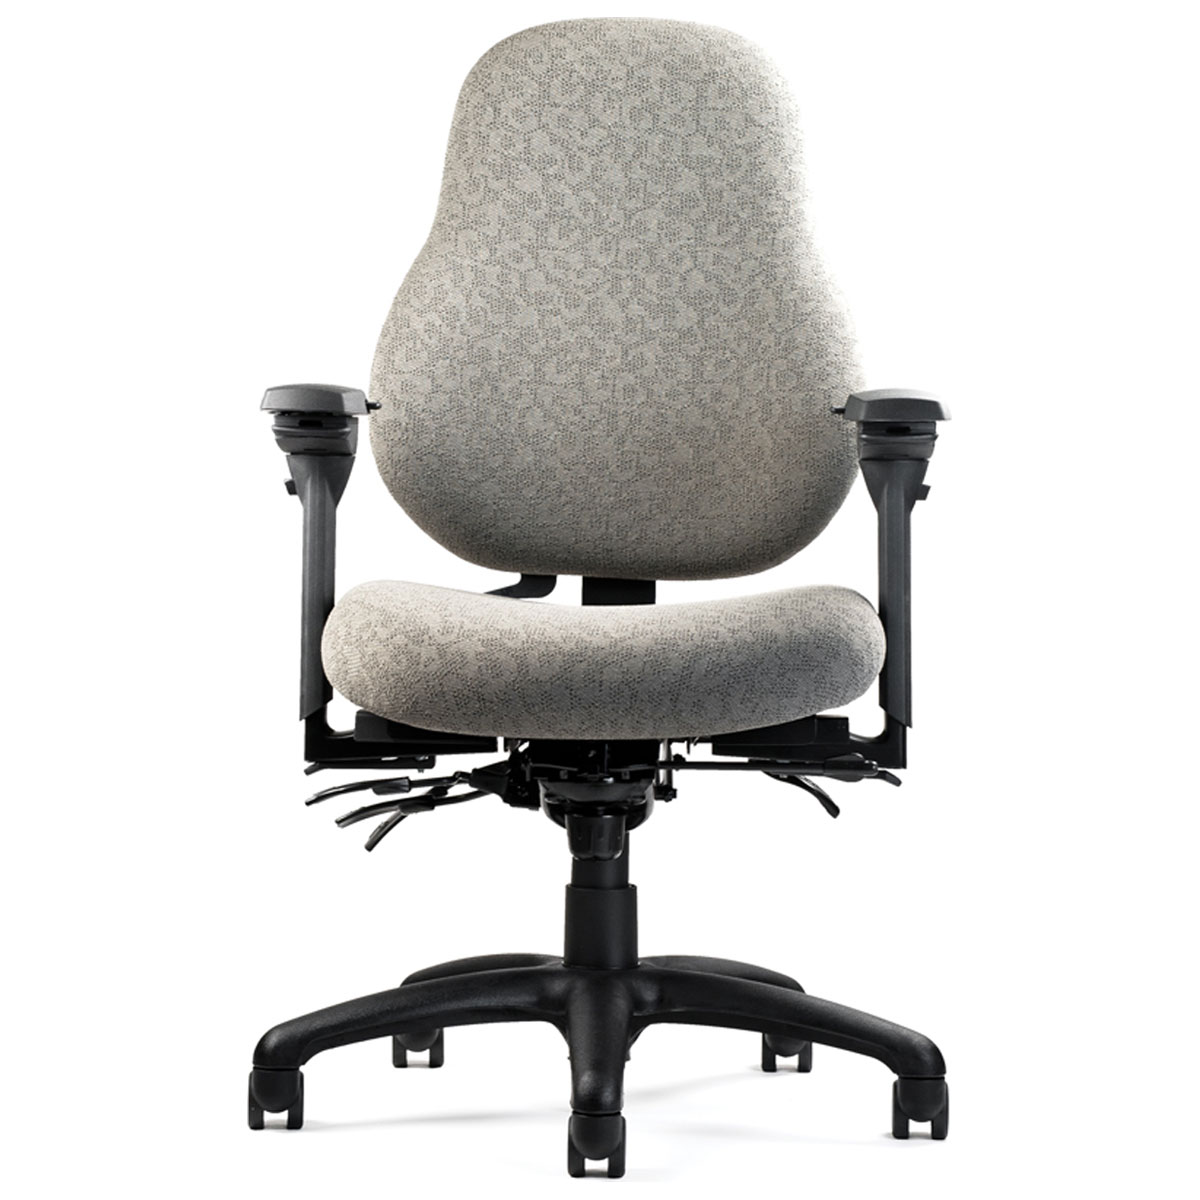 ergonomic chair posture double bean bag neutral 8000 shop chairs